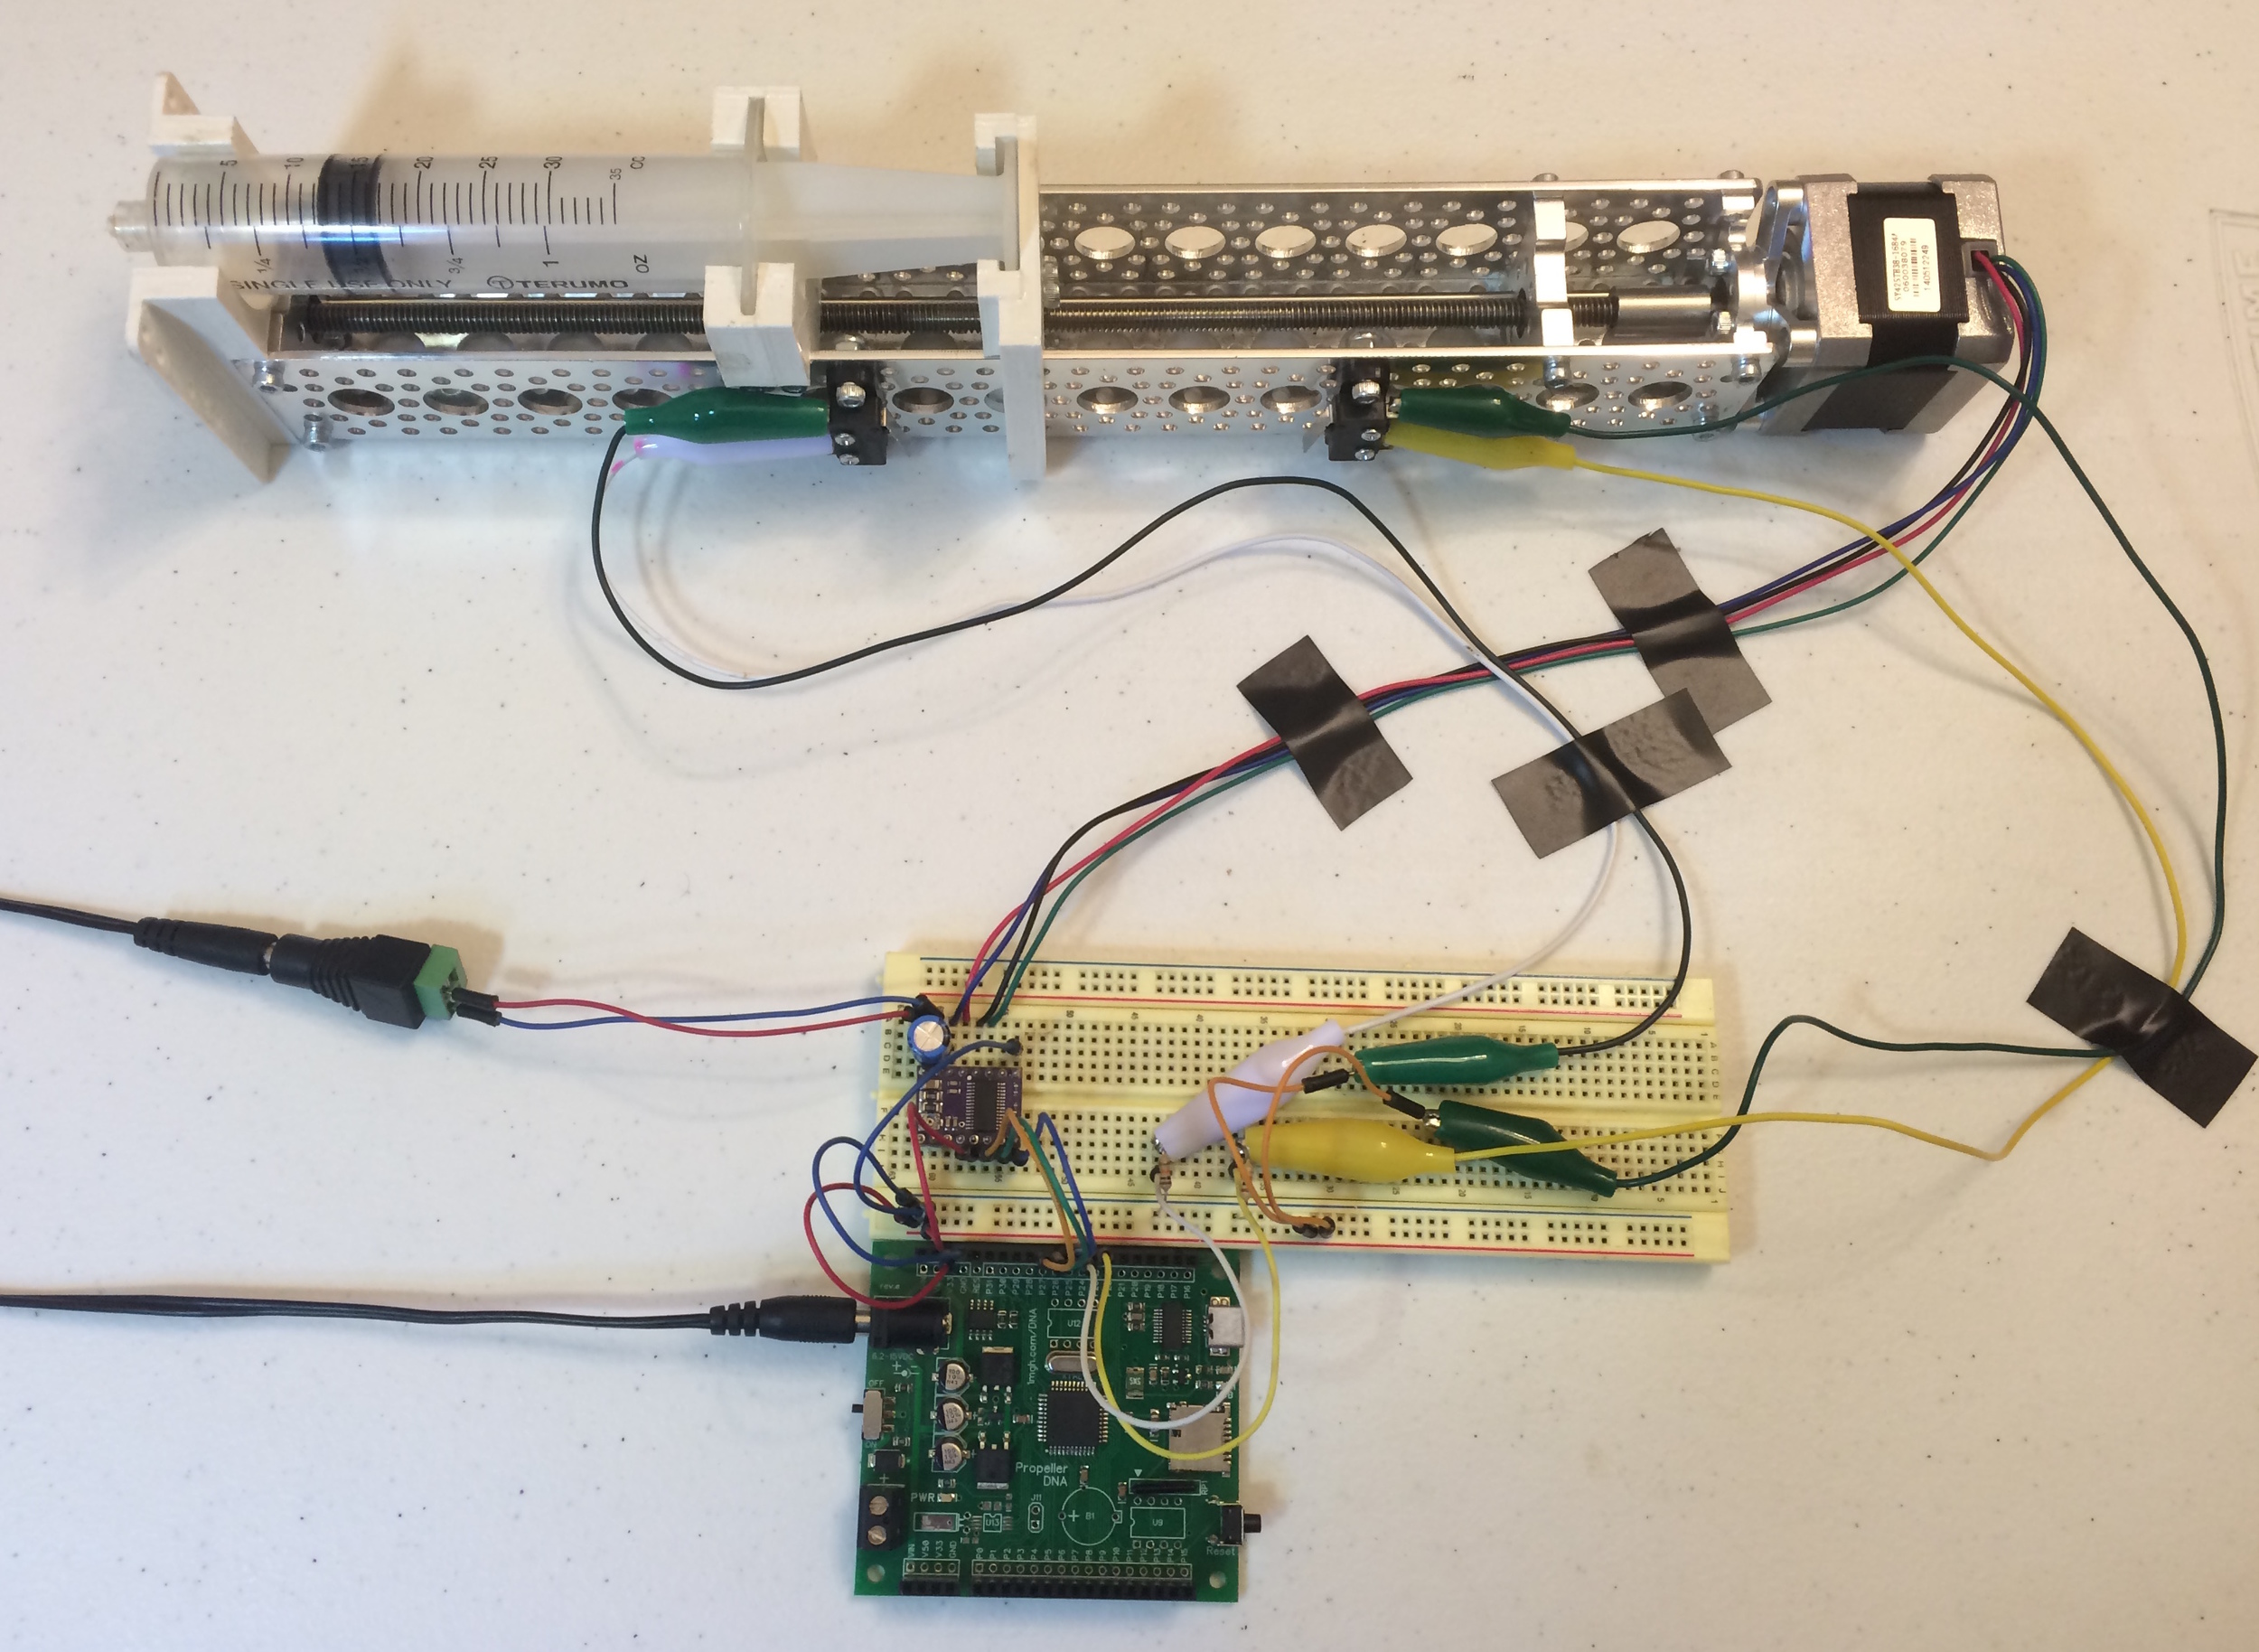 SYRINGE PUMP and completed circuit with DRV8825, PROPELLER MICROCONTROLLER, and limit micro switches. IN THIS IMAGE, THE SLEEP PIN ON THE DRV8825 IS NOW CONNECTED TO AN I/O PIN ON THE PROPELLER.